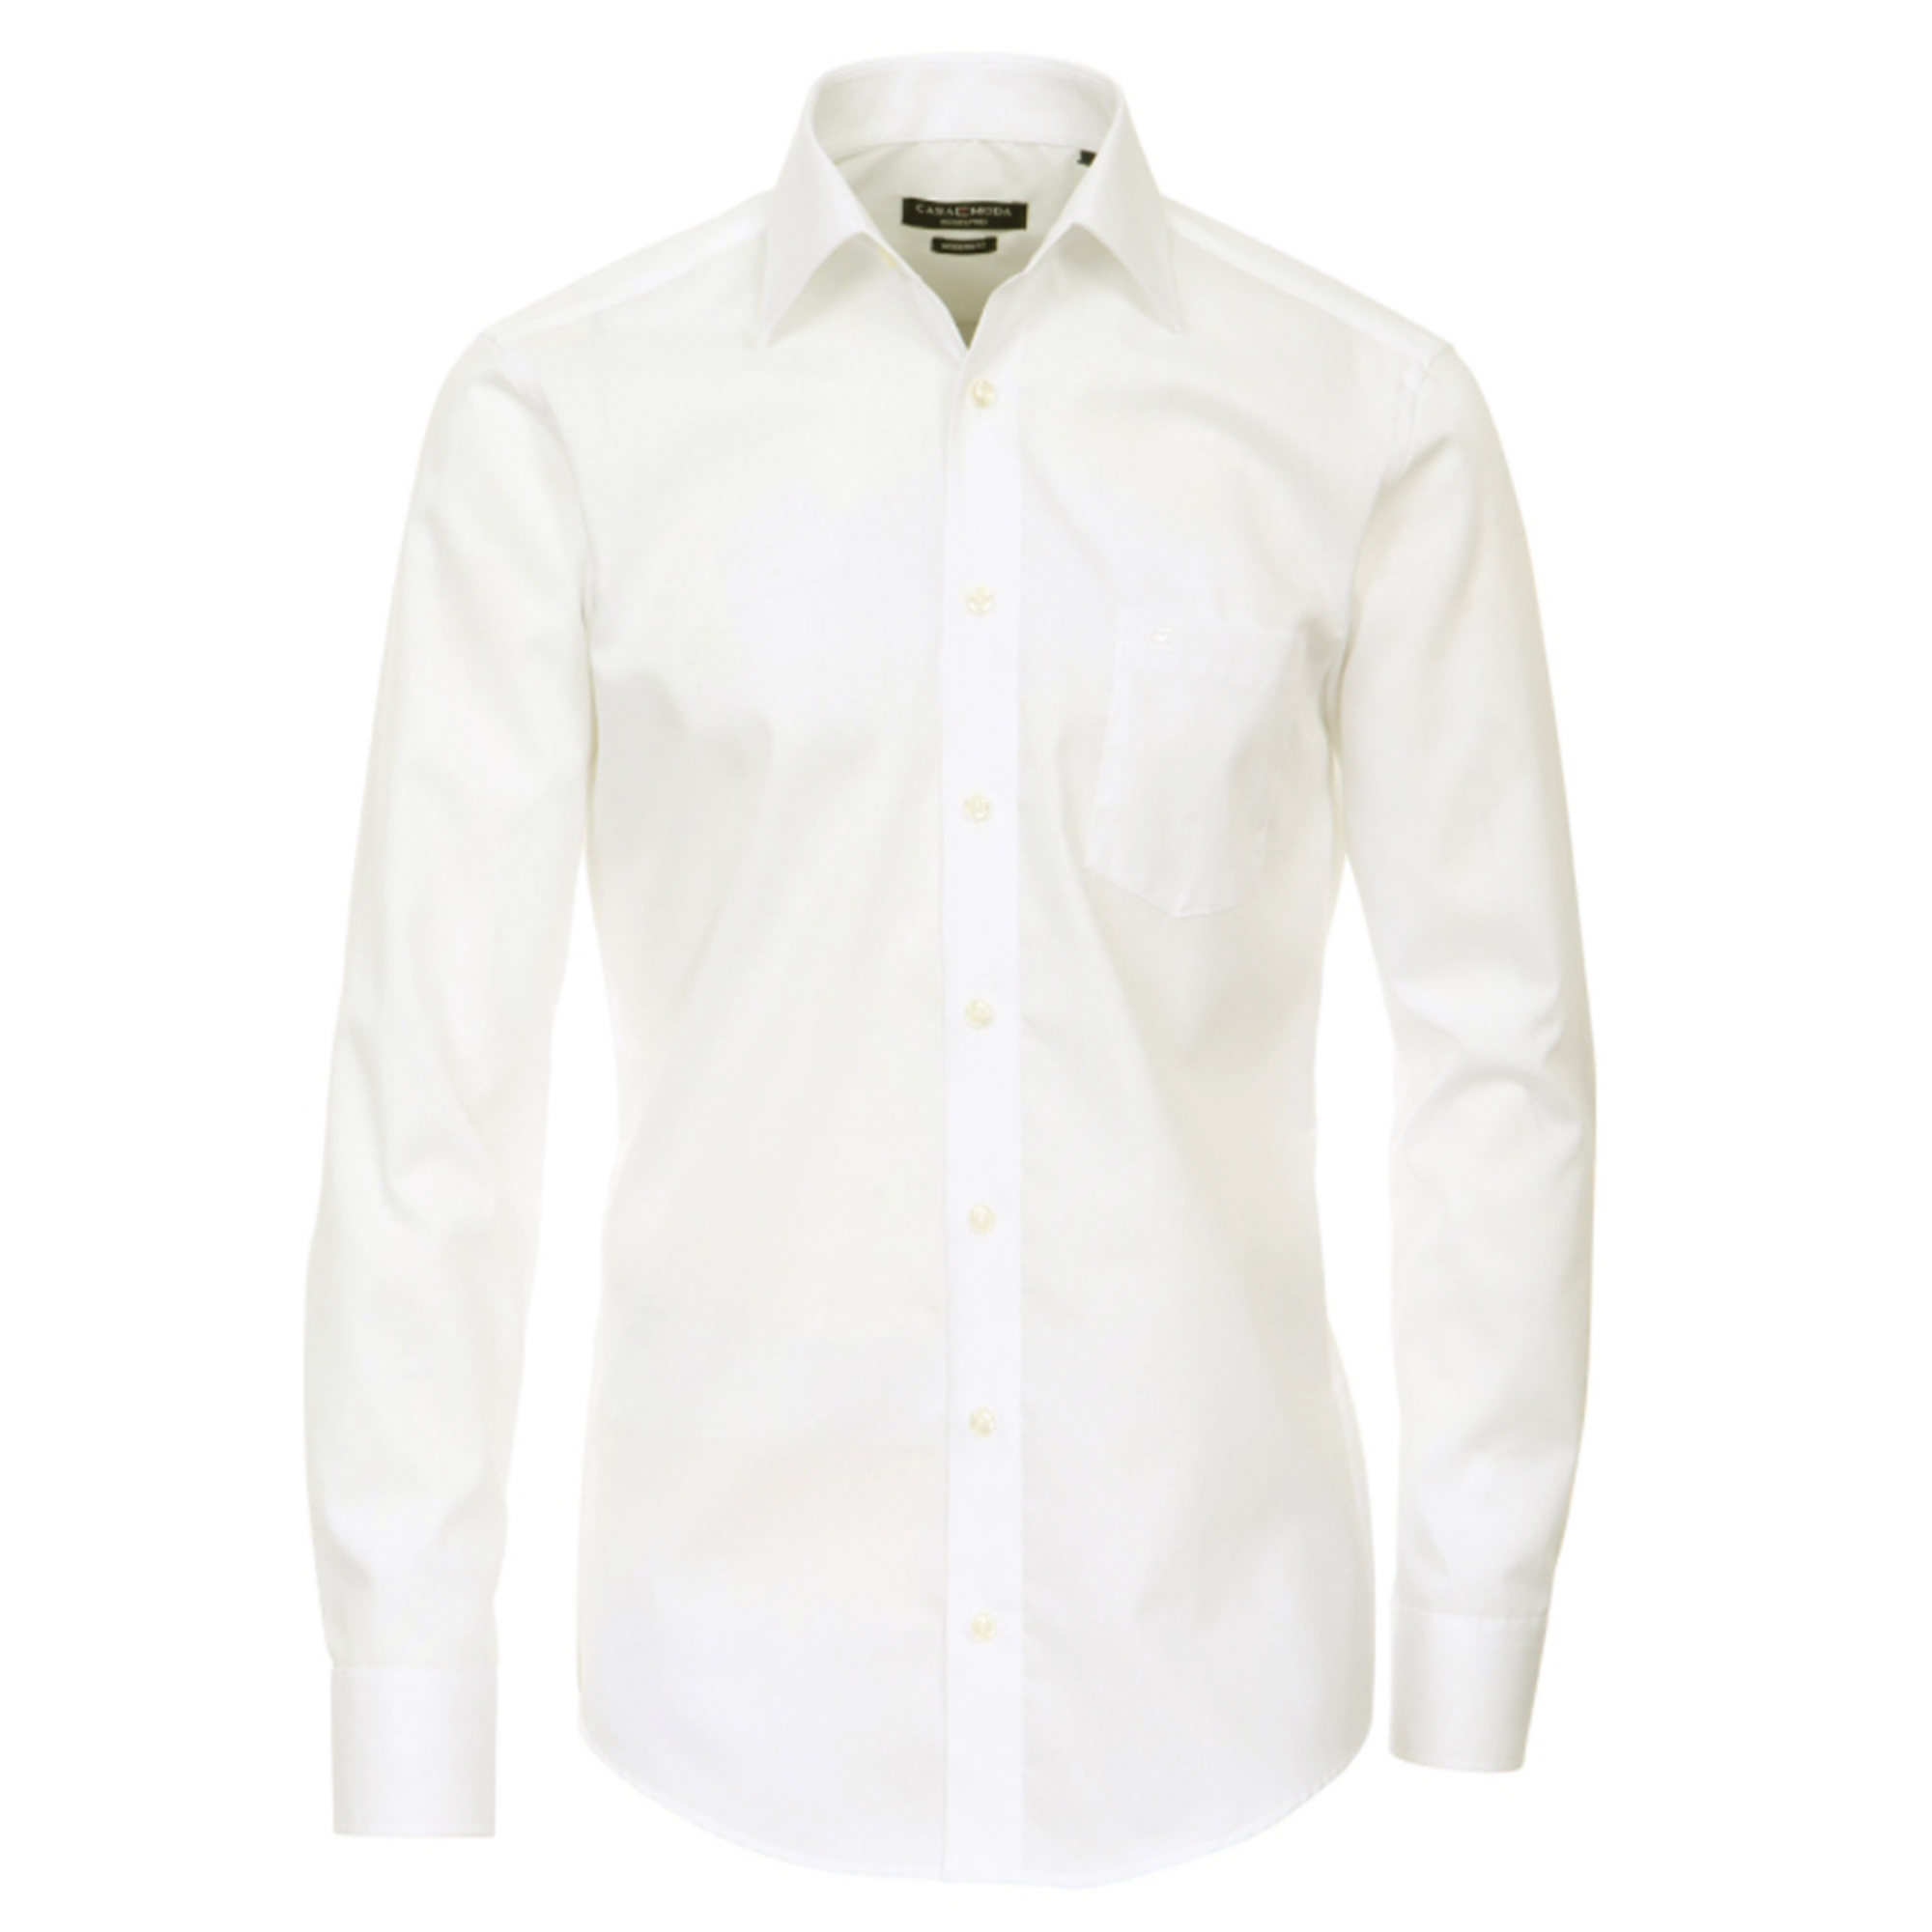 the latest 71e5a 6ae8b Casa Moda Slim Fit Herren Hemd ivory | tailliertes Herrenhemd HL31